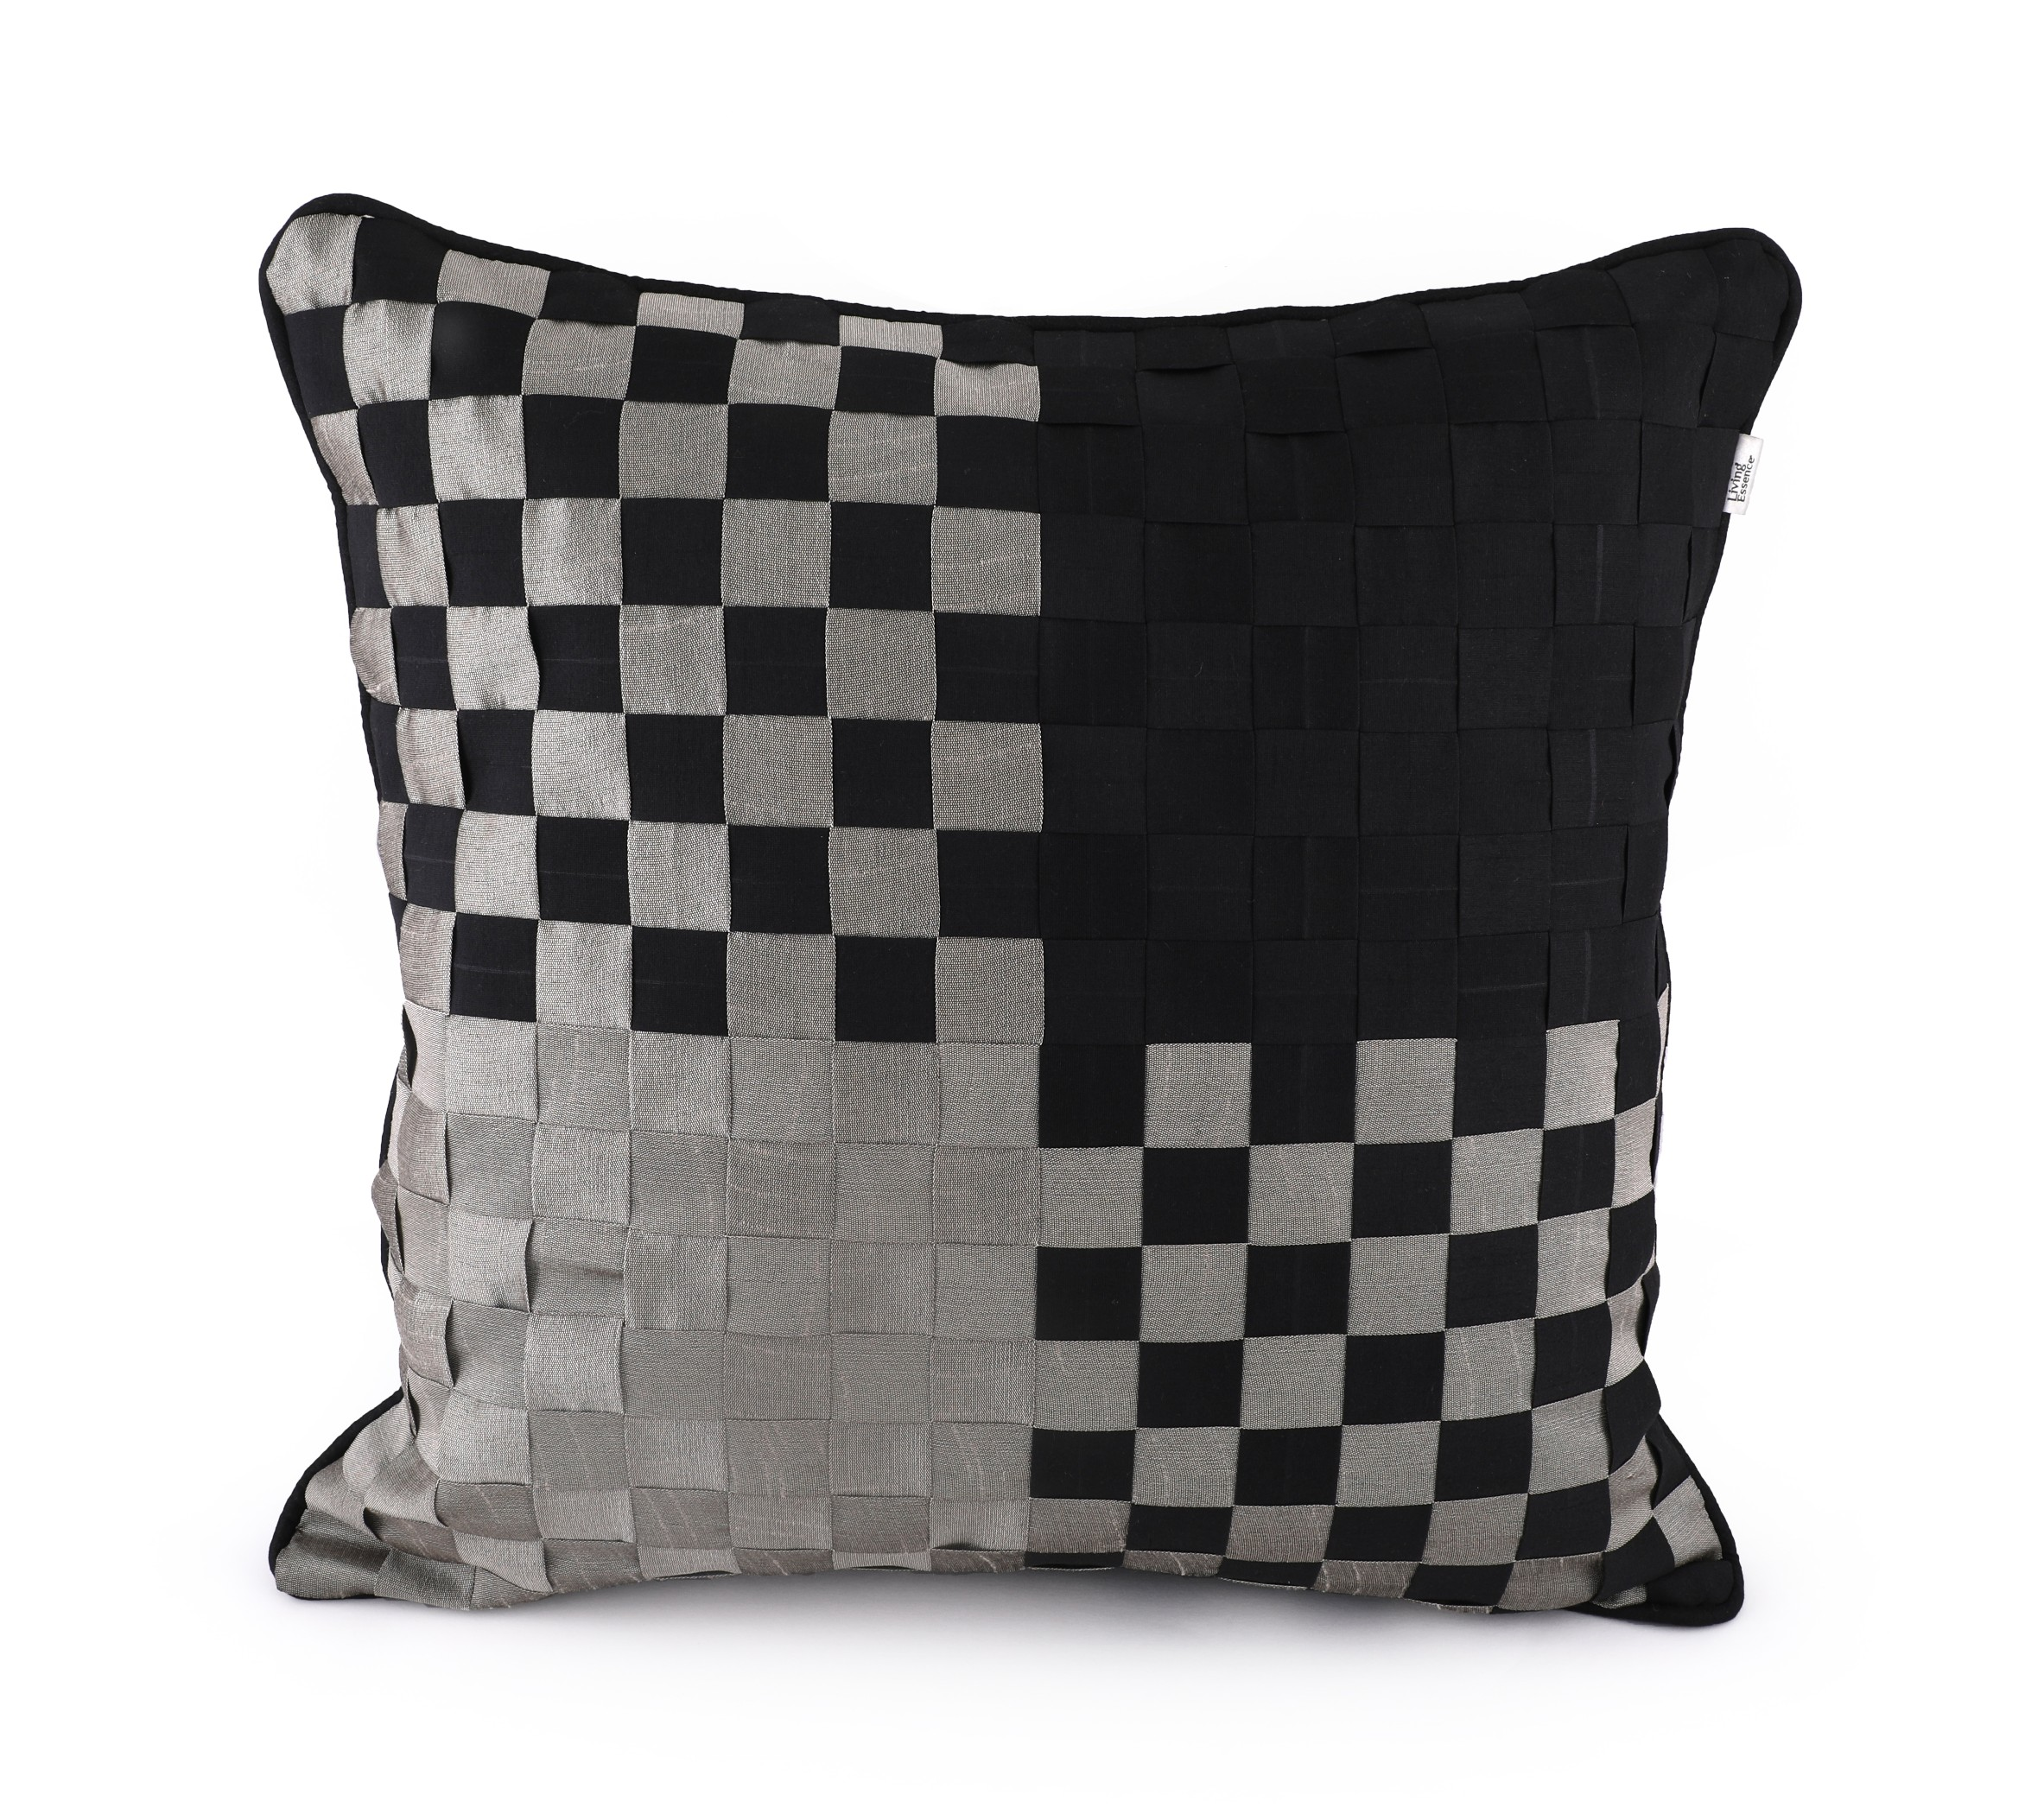 Basket Black Cushion Cover Cotton Cushion Covers in Black Colour by HomeTown